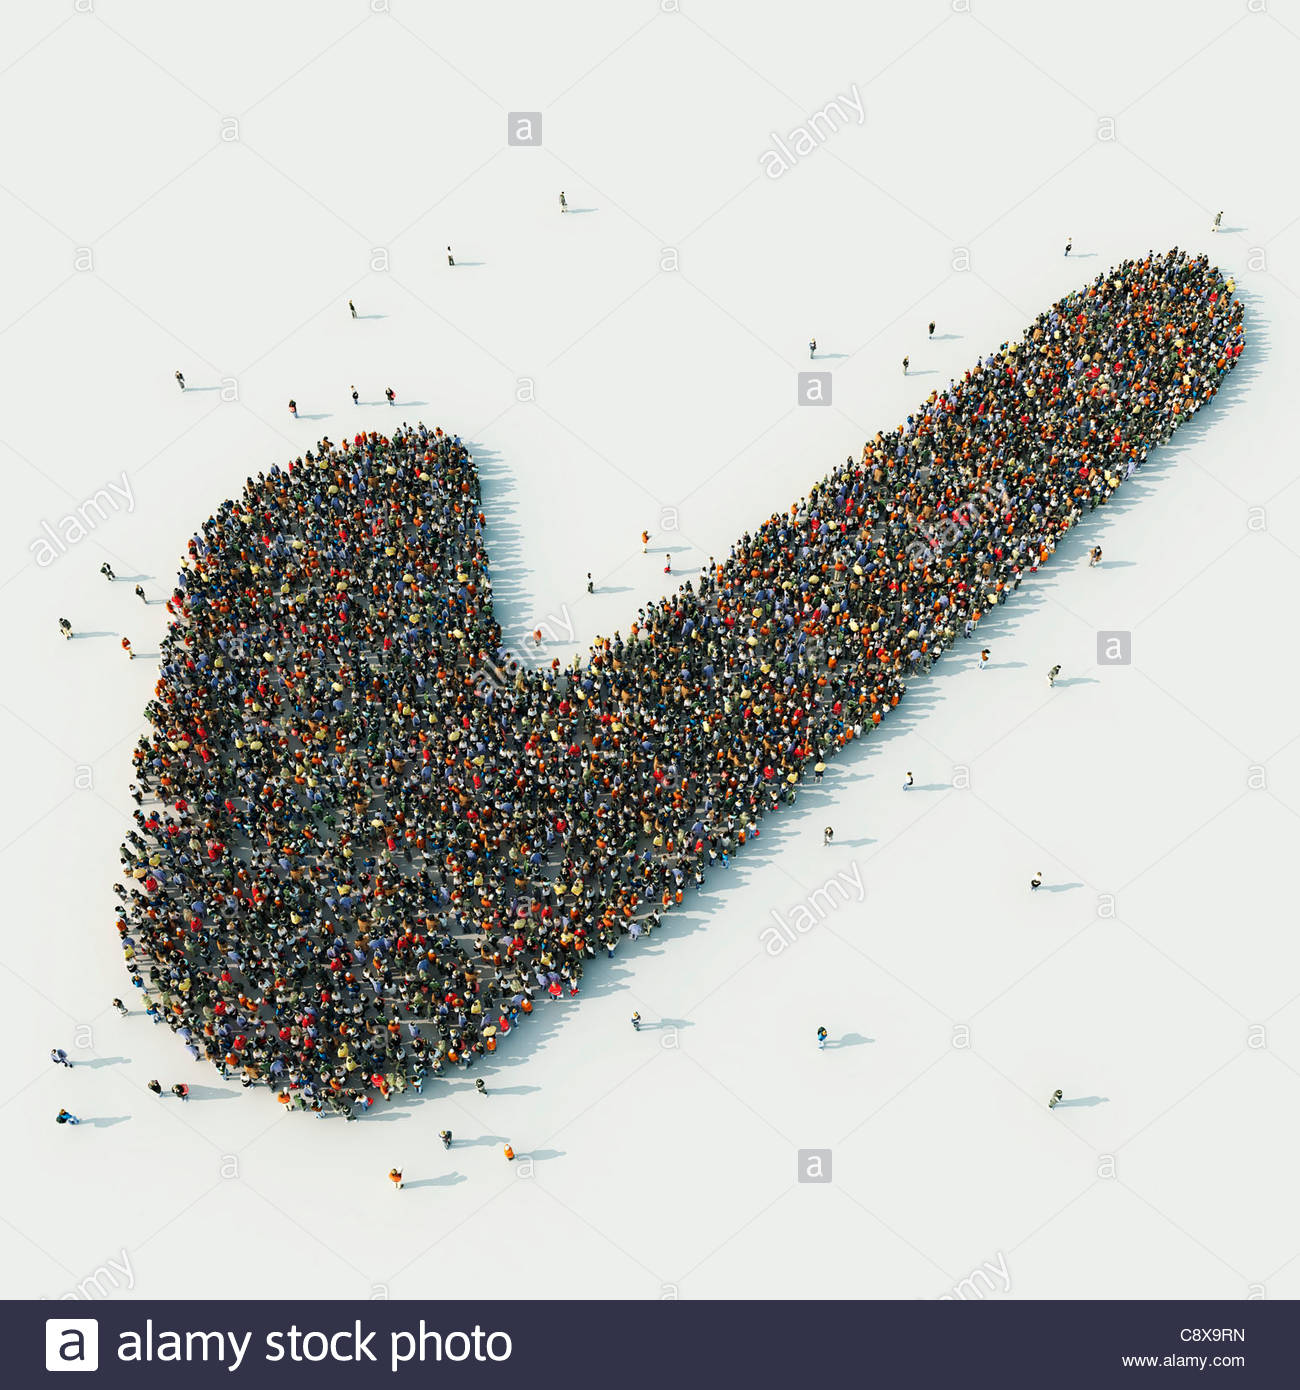 Aerial view of crowd of people arranged in check mark - Stock Image